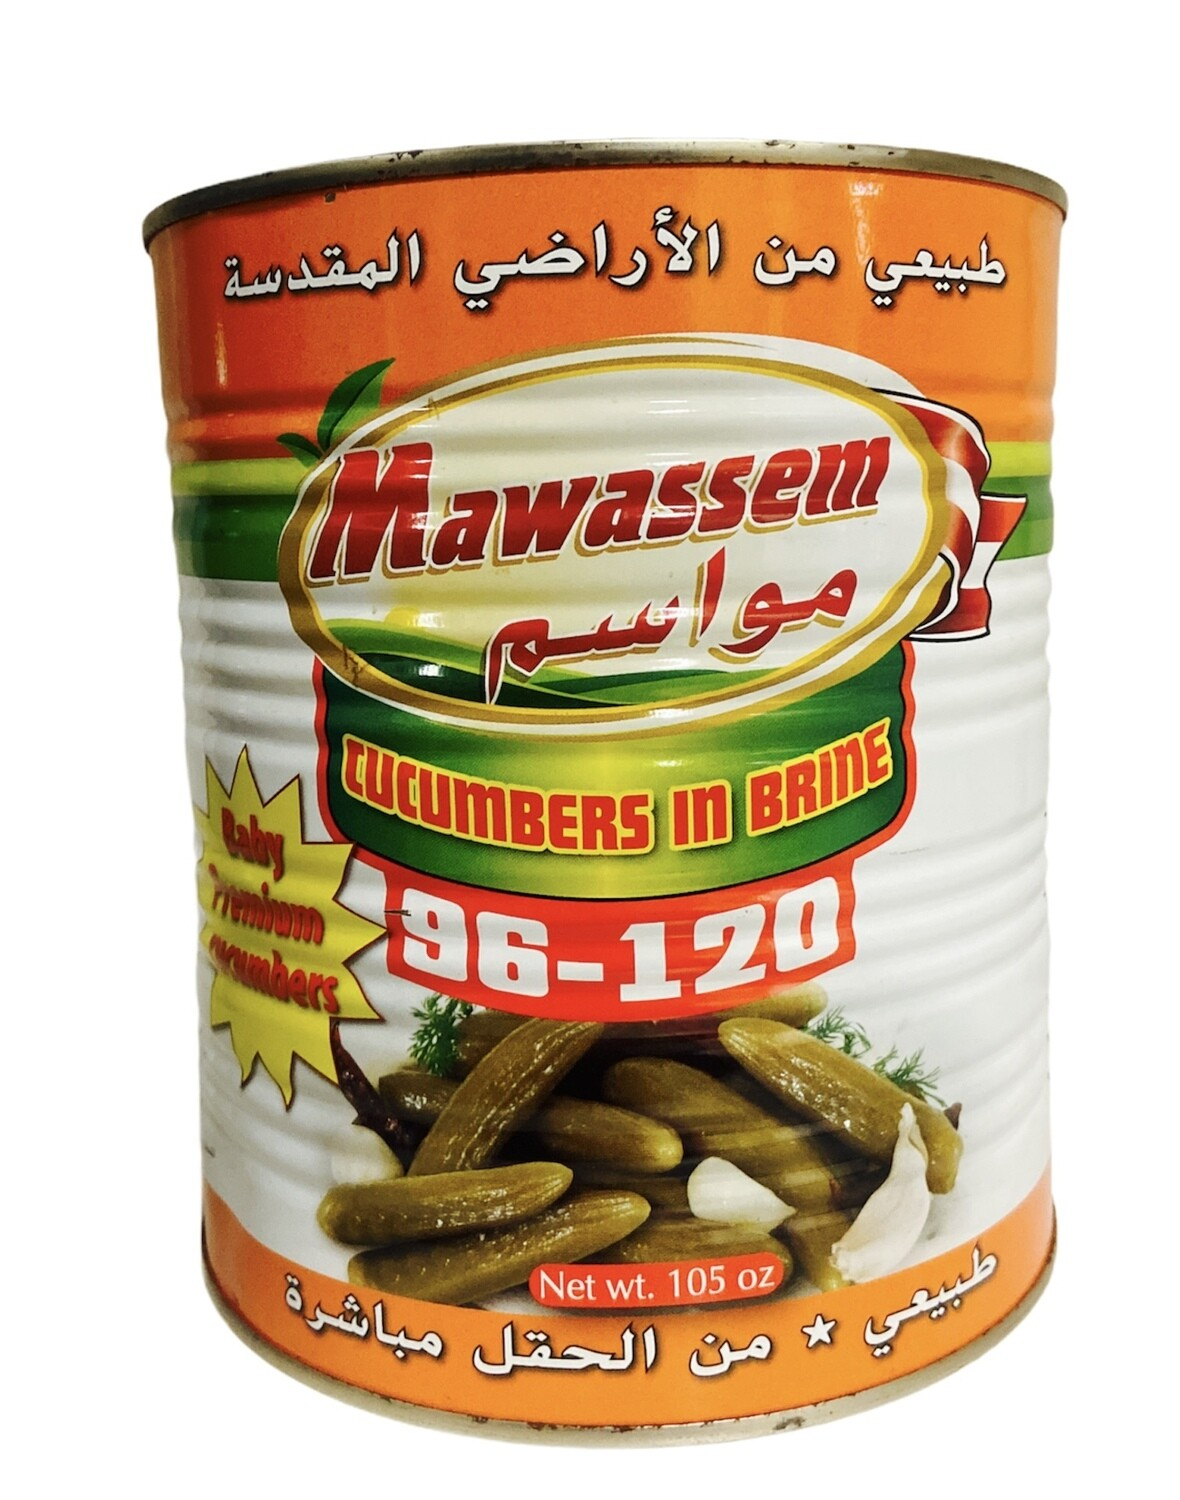 Mawassem Pickled Cucumber Count 96/120 6x6lb